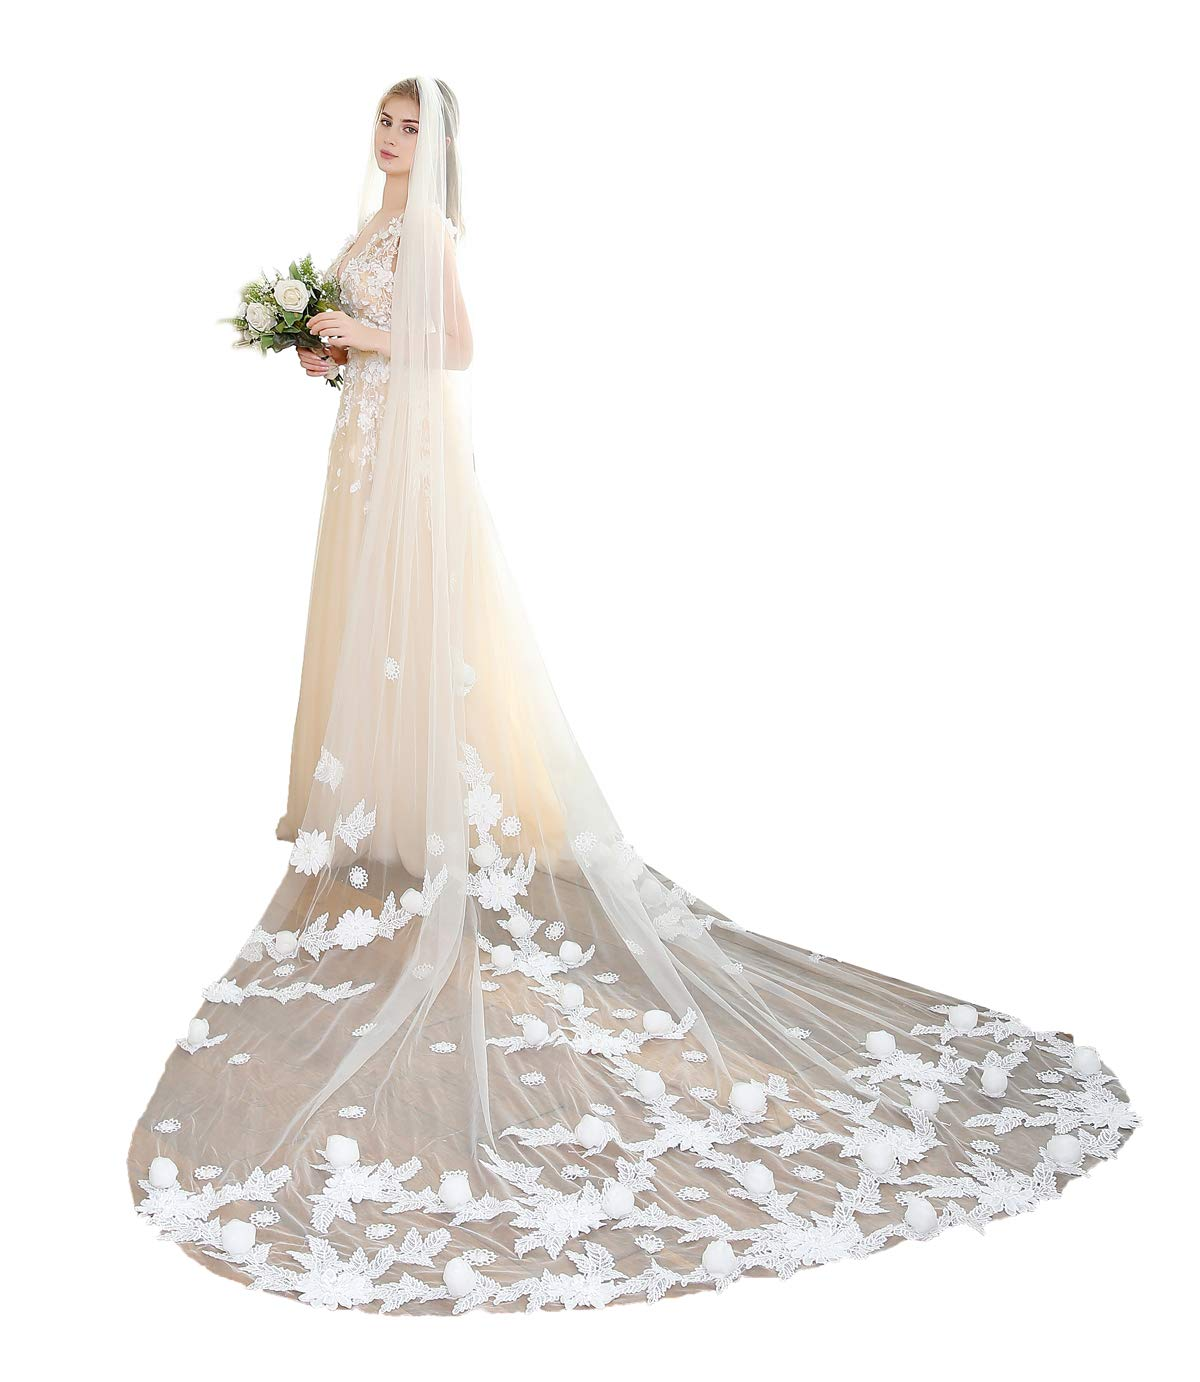 Fenghuavip Ivory Tulle 1T Brides Veils 5M Cathedral Long 3D Flower Veil with Comb (5 meters, Ivory)